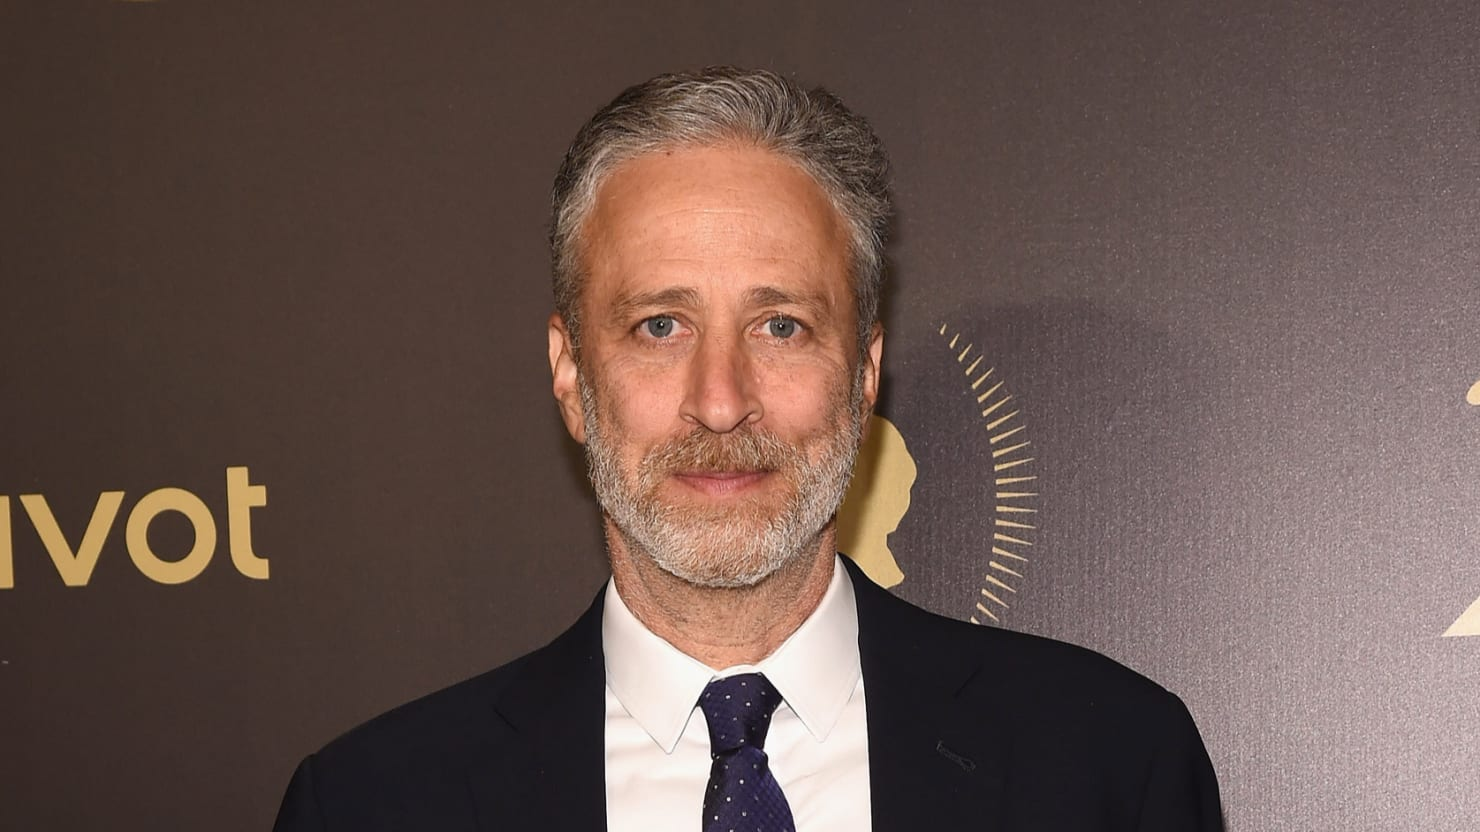 Jon Stewart: Fixing the Police Won't Fix America's Systemic Racism